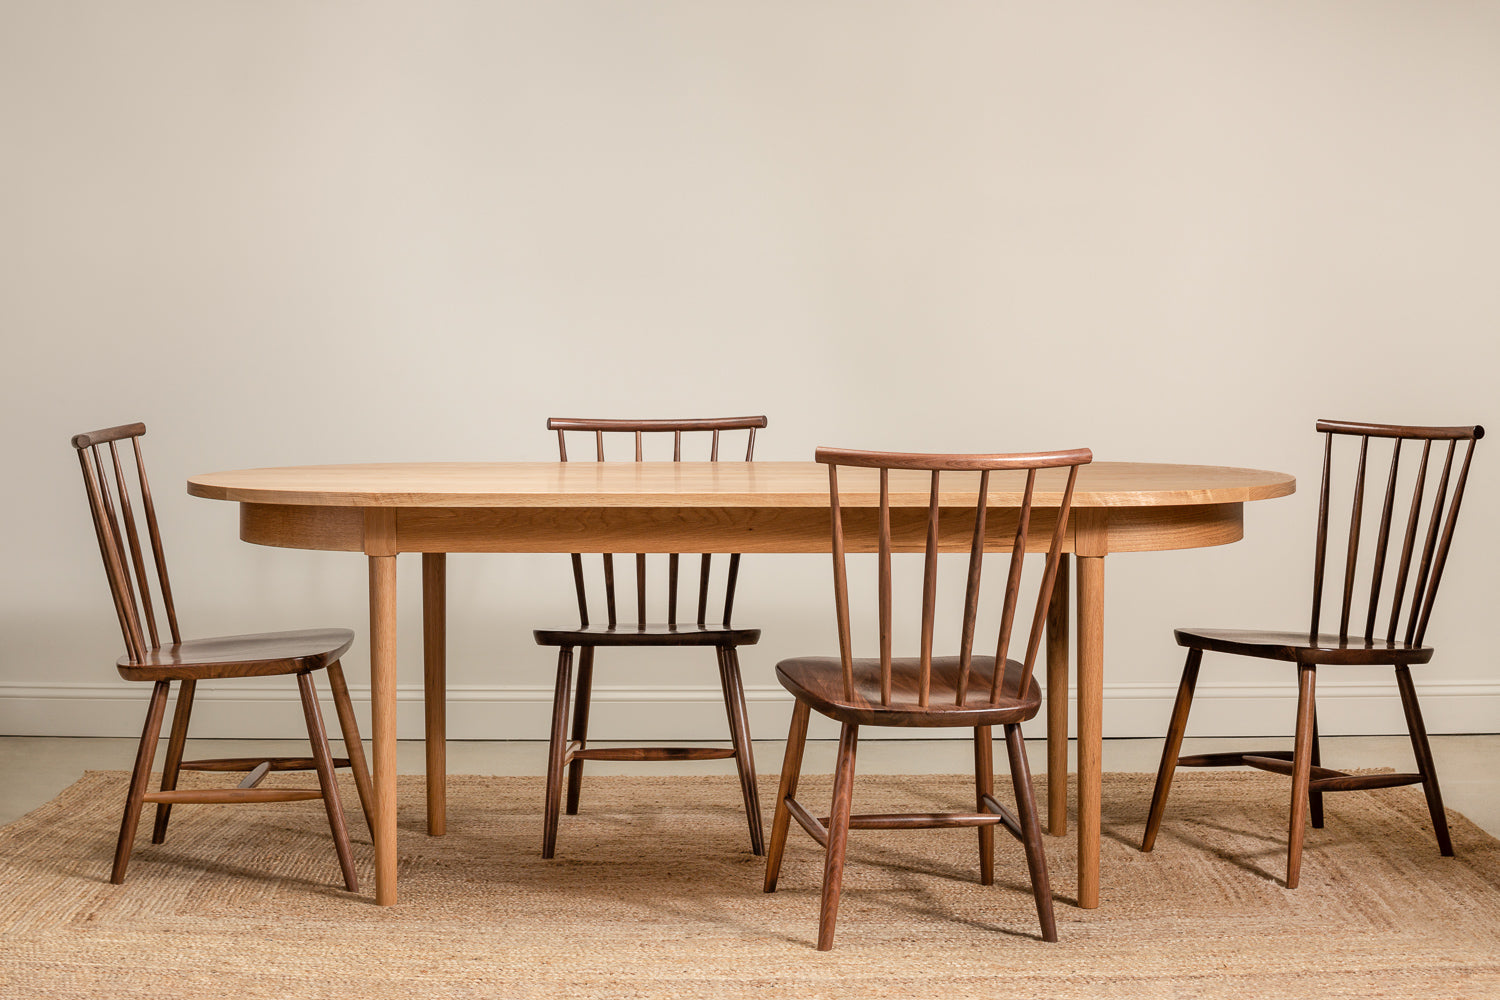 Walnut Concord chairs around white oak Highland Table from Chilton Furniture Co.